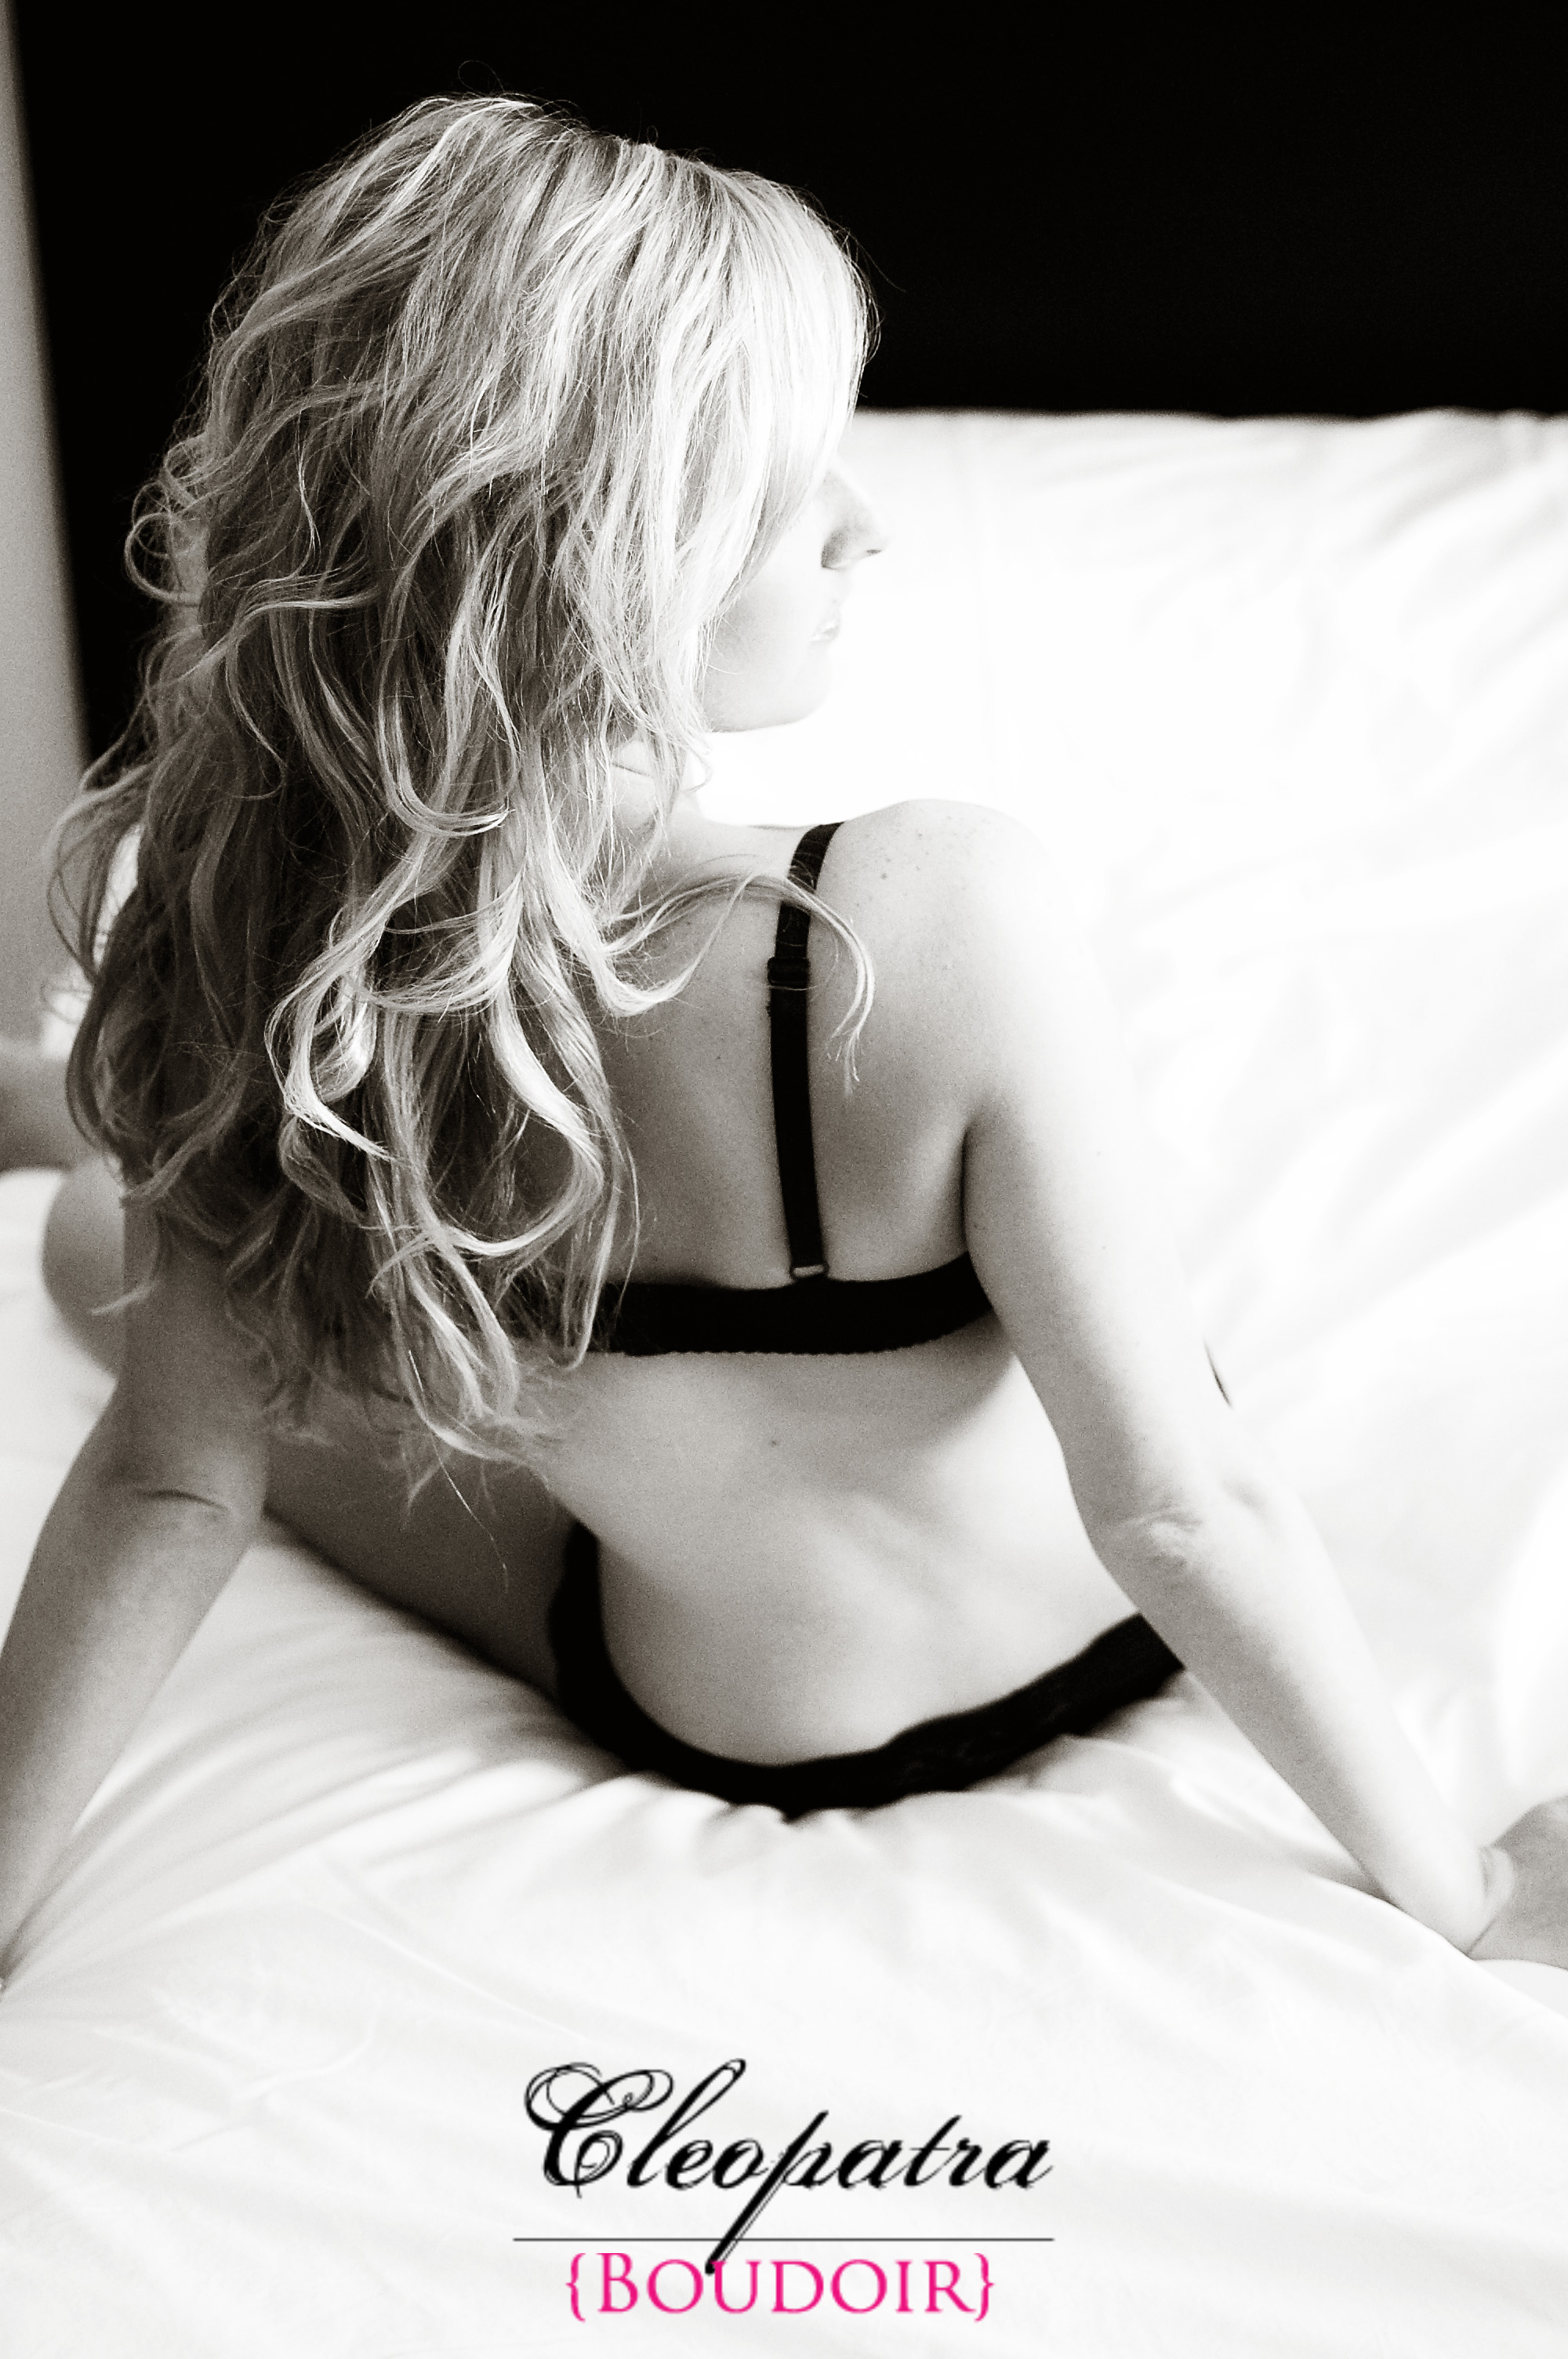 Valentines Day Gifts By Cleopatra Photography Boudoir